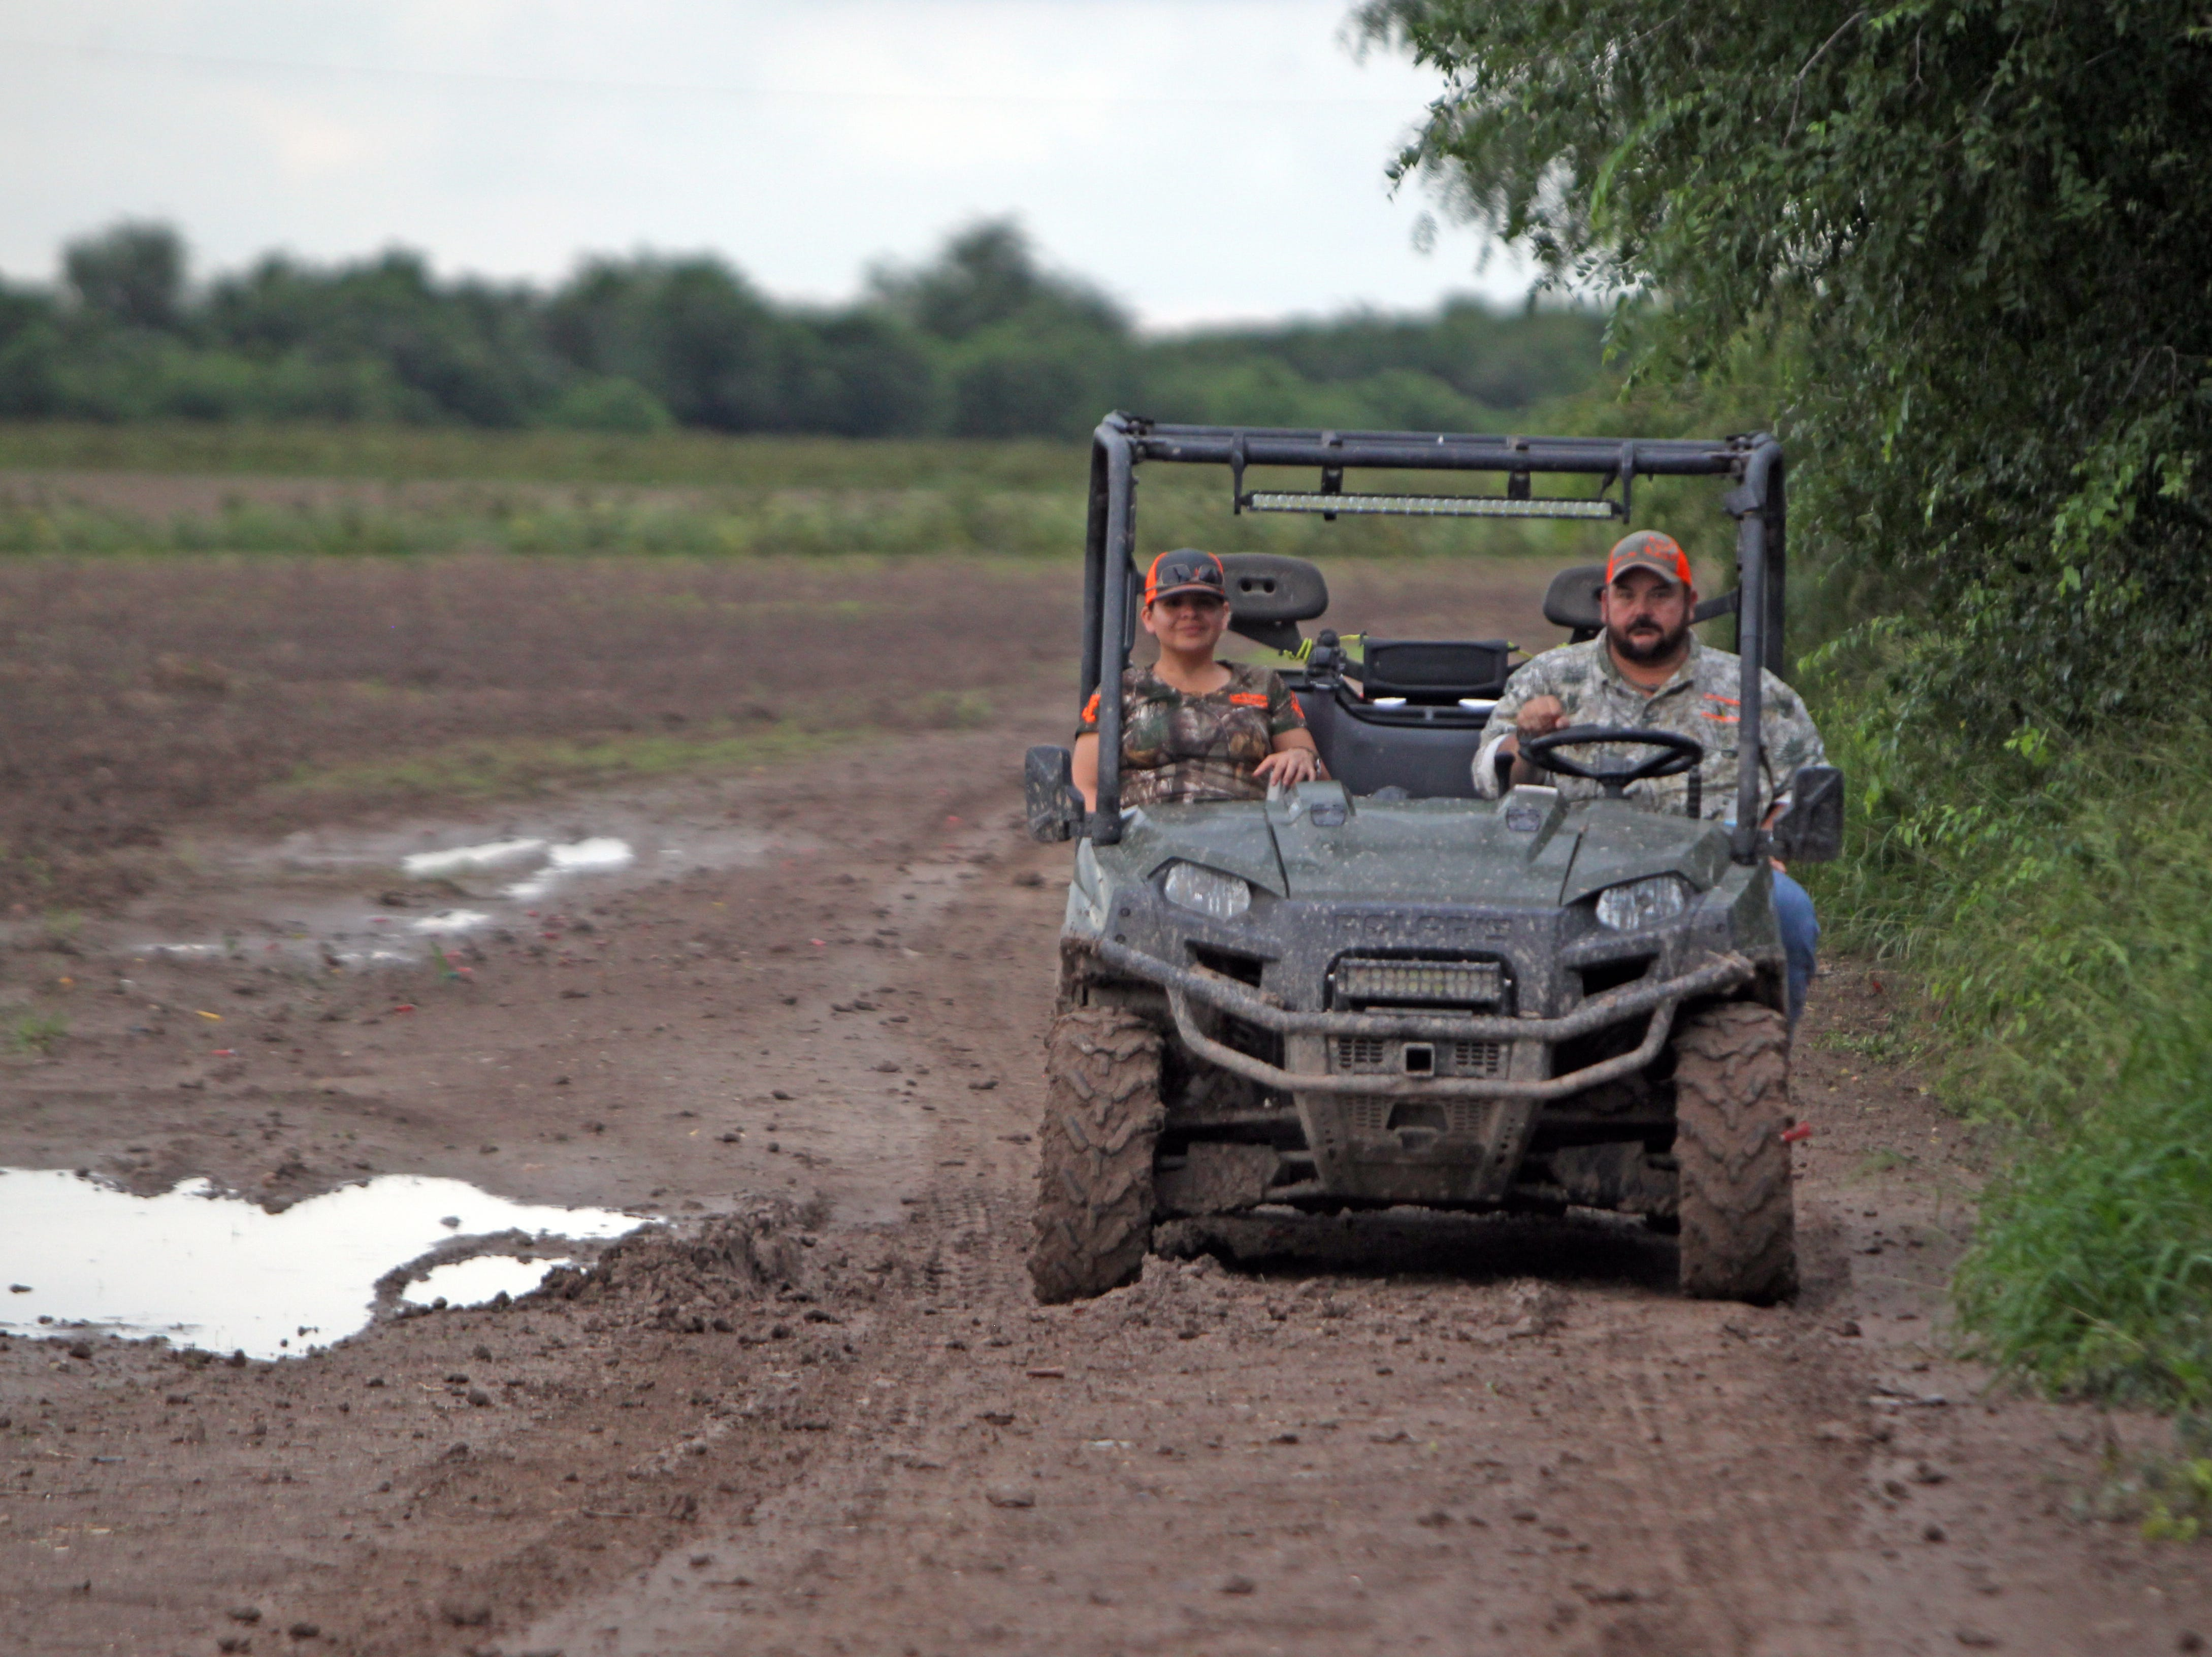 Johnny Leal and his wife making the rounds during opening day of dove season at his Los Girasoles White Wing fields.